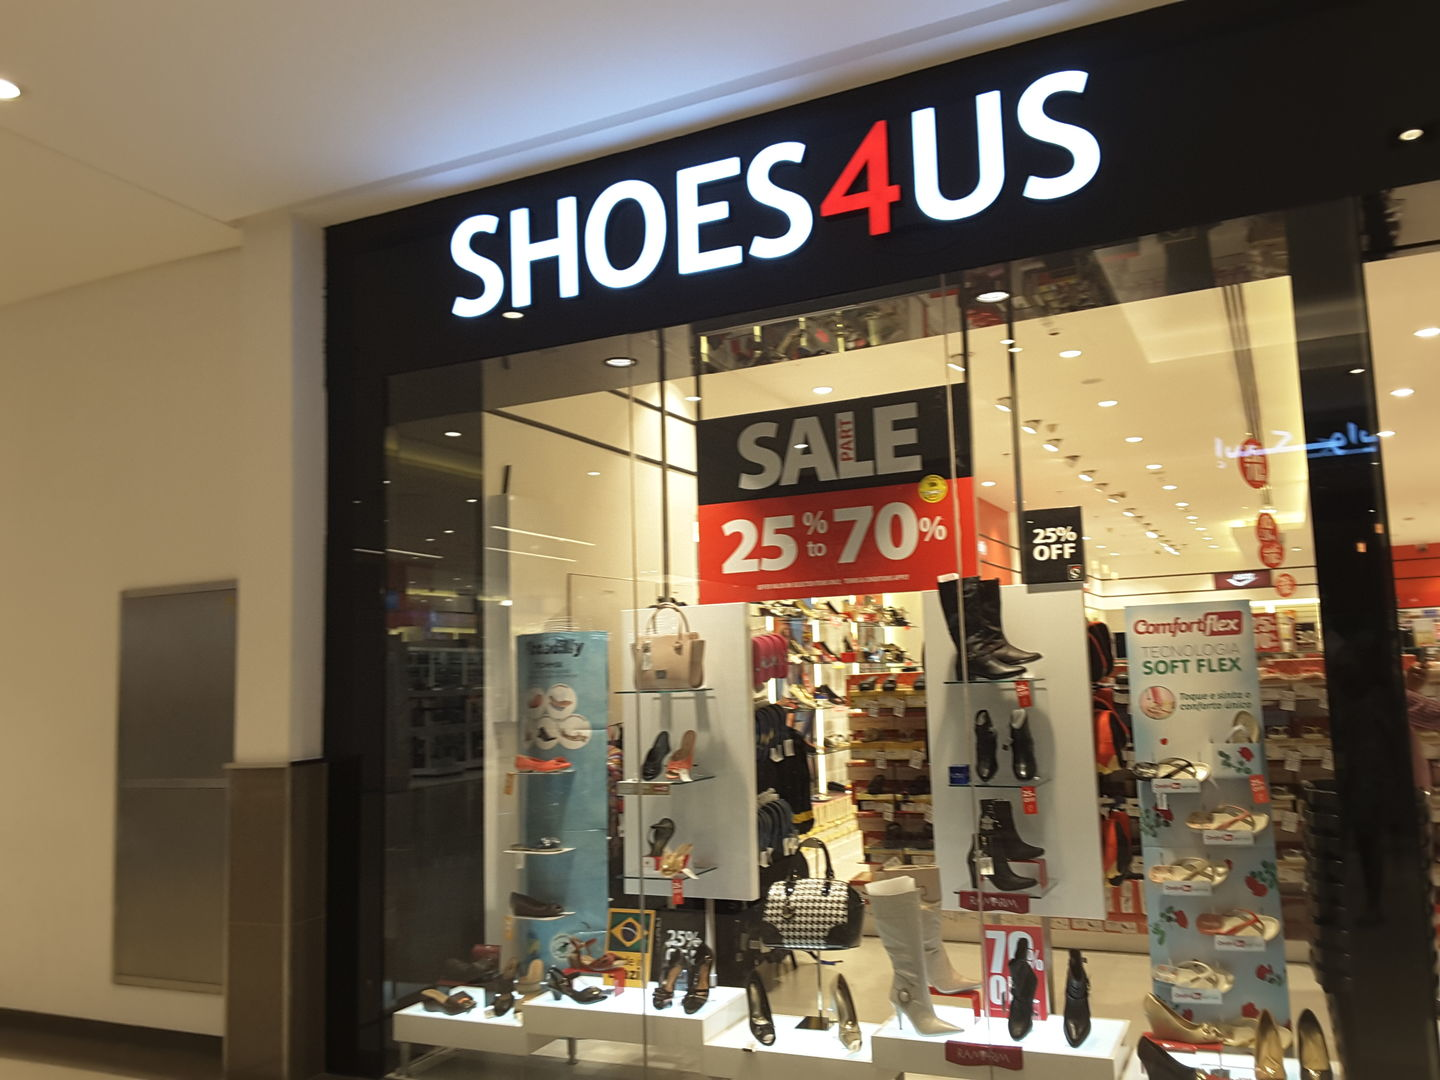 HiDubai-business-shoes-4-us-shopping-footwear-al-shindagha-dubai-2